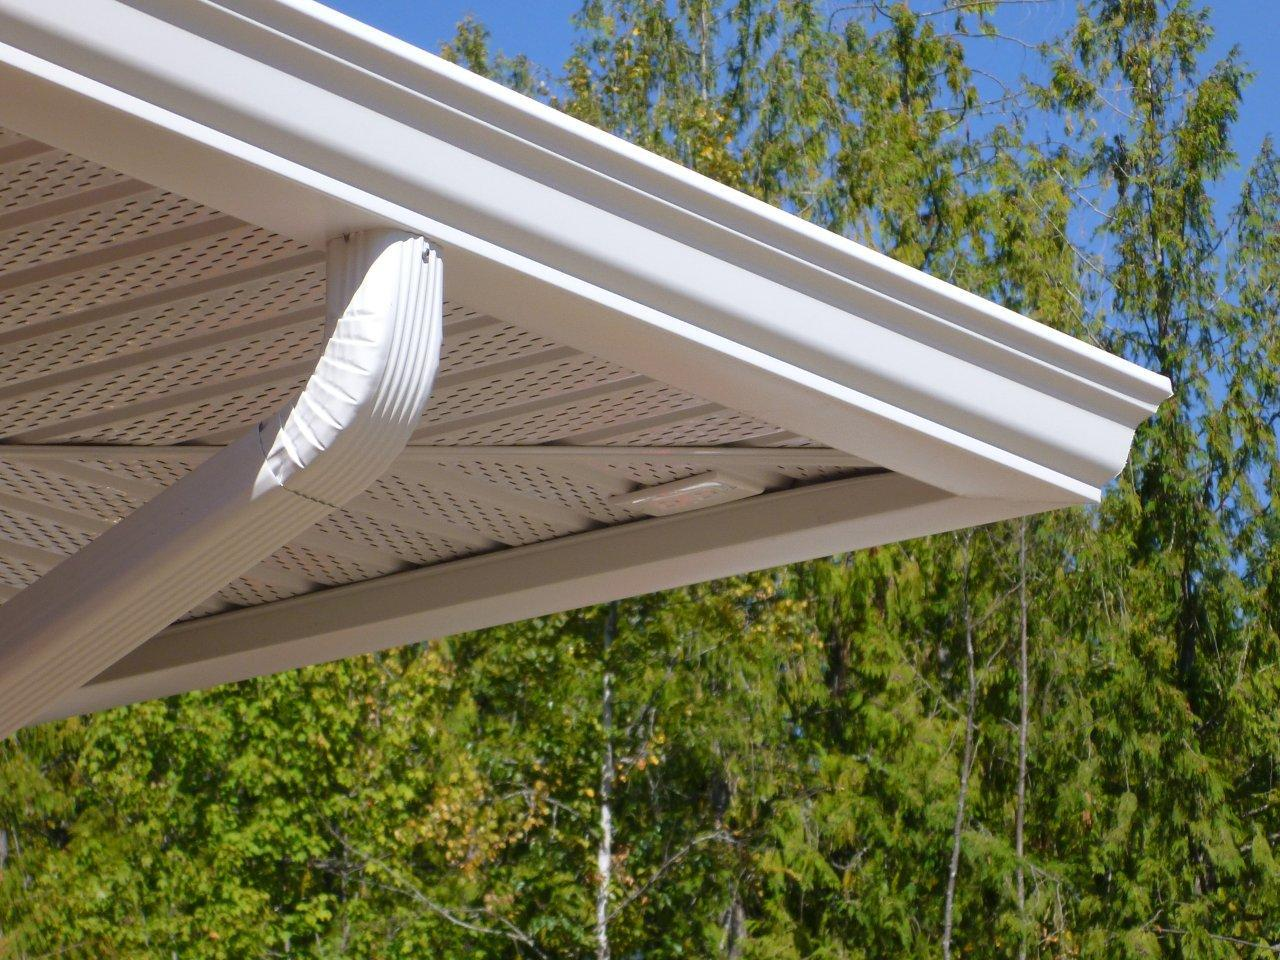 Super Crown Gutter Sales Service Cleaning And Installation